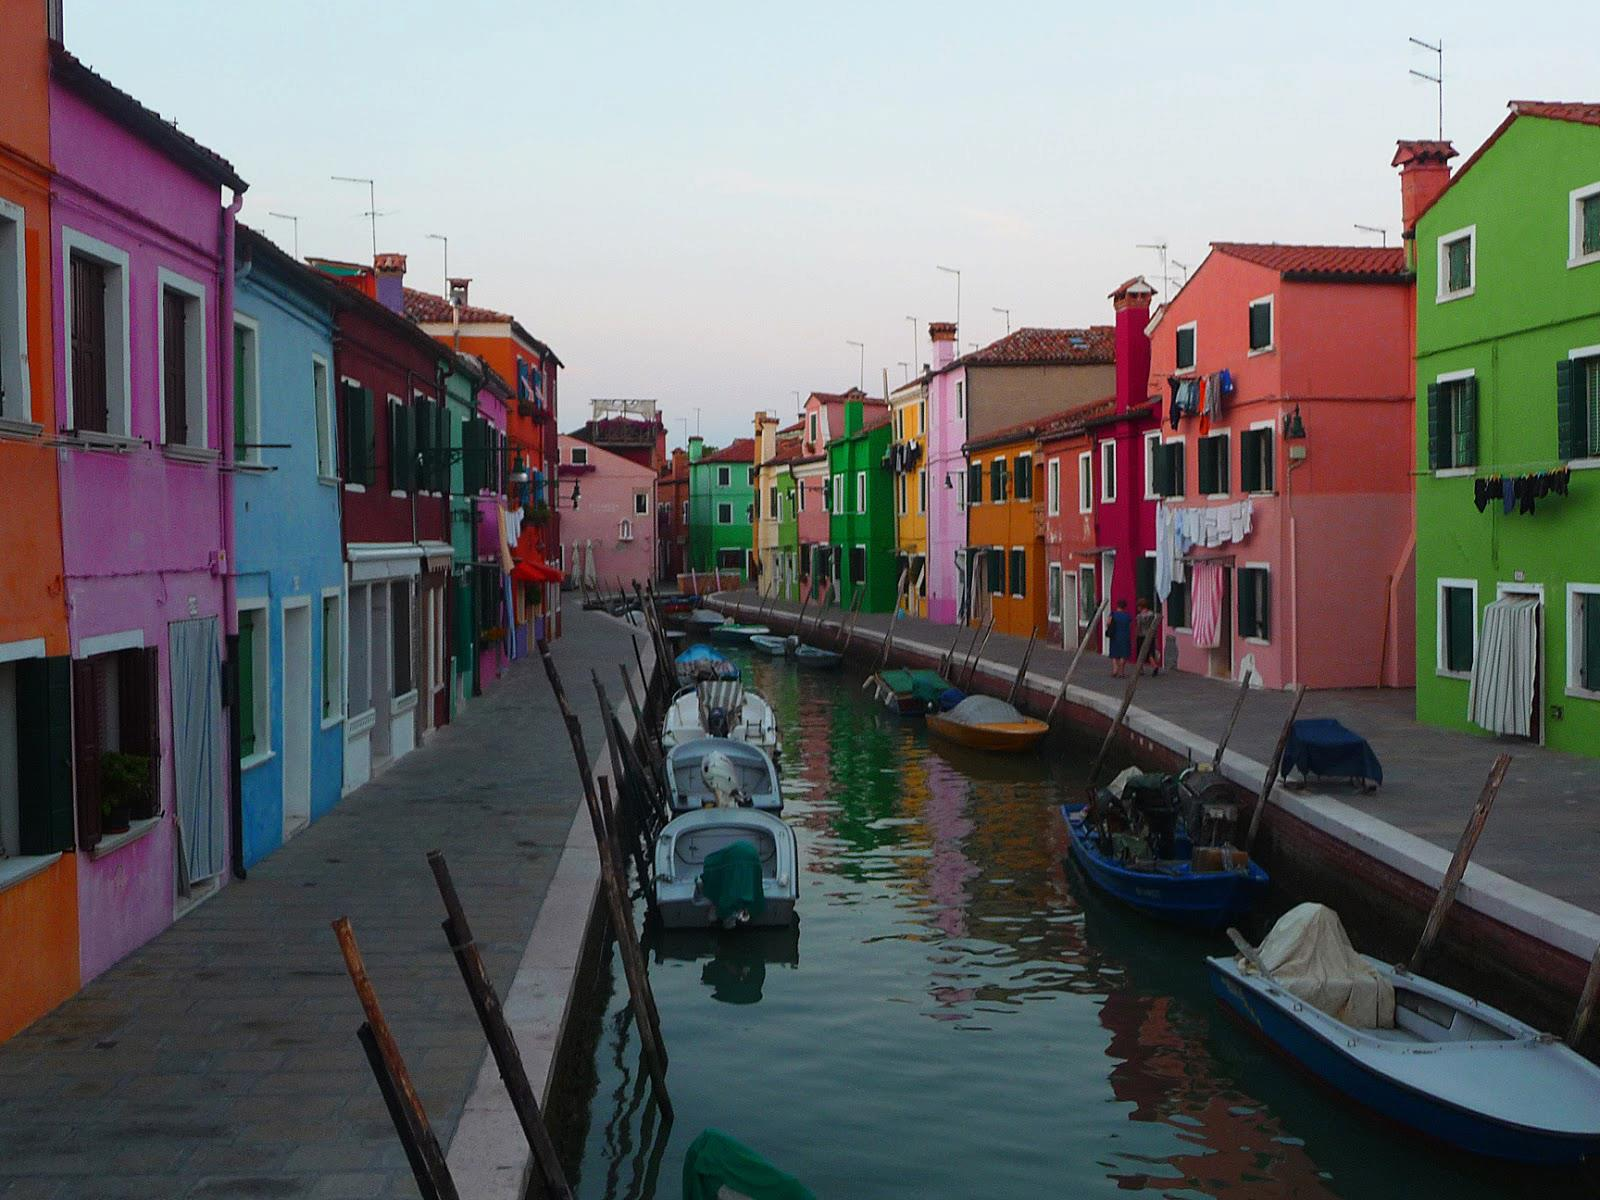 Burano INTERVIEW: For The Love of Italy